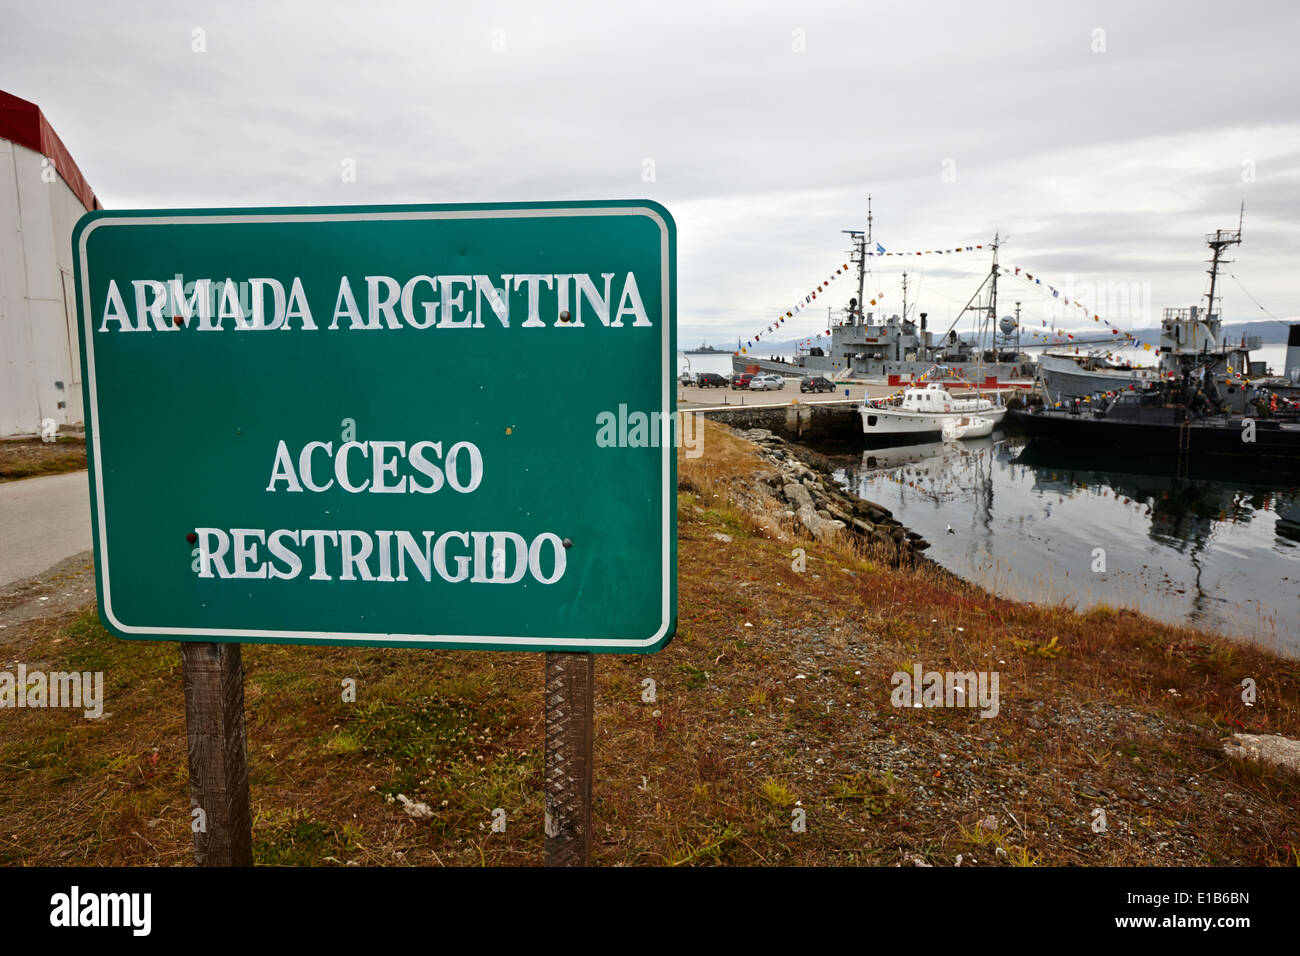 restricted entry warning signs at armada argentina argentine naval base almirante berisso Ushuaia Argentina - Stock Image